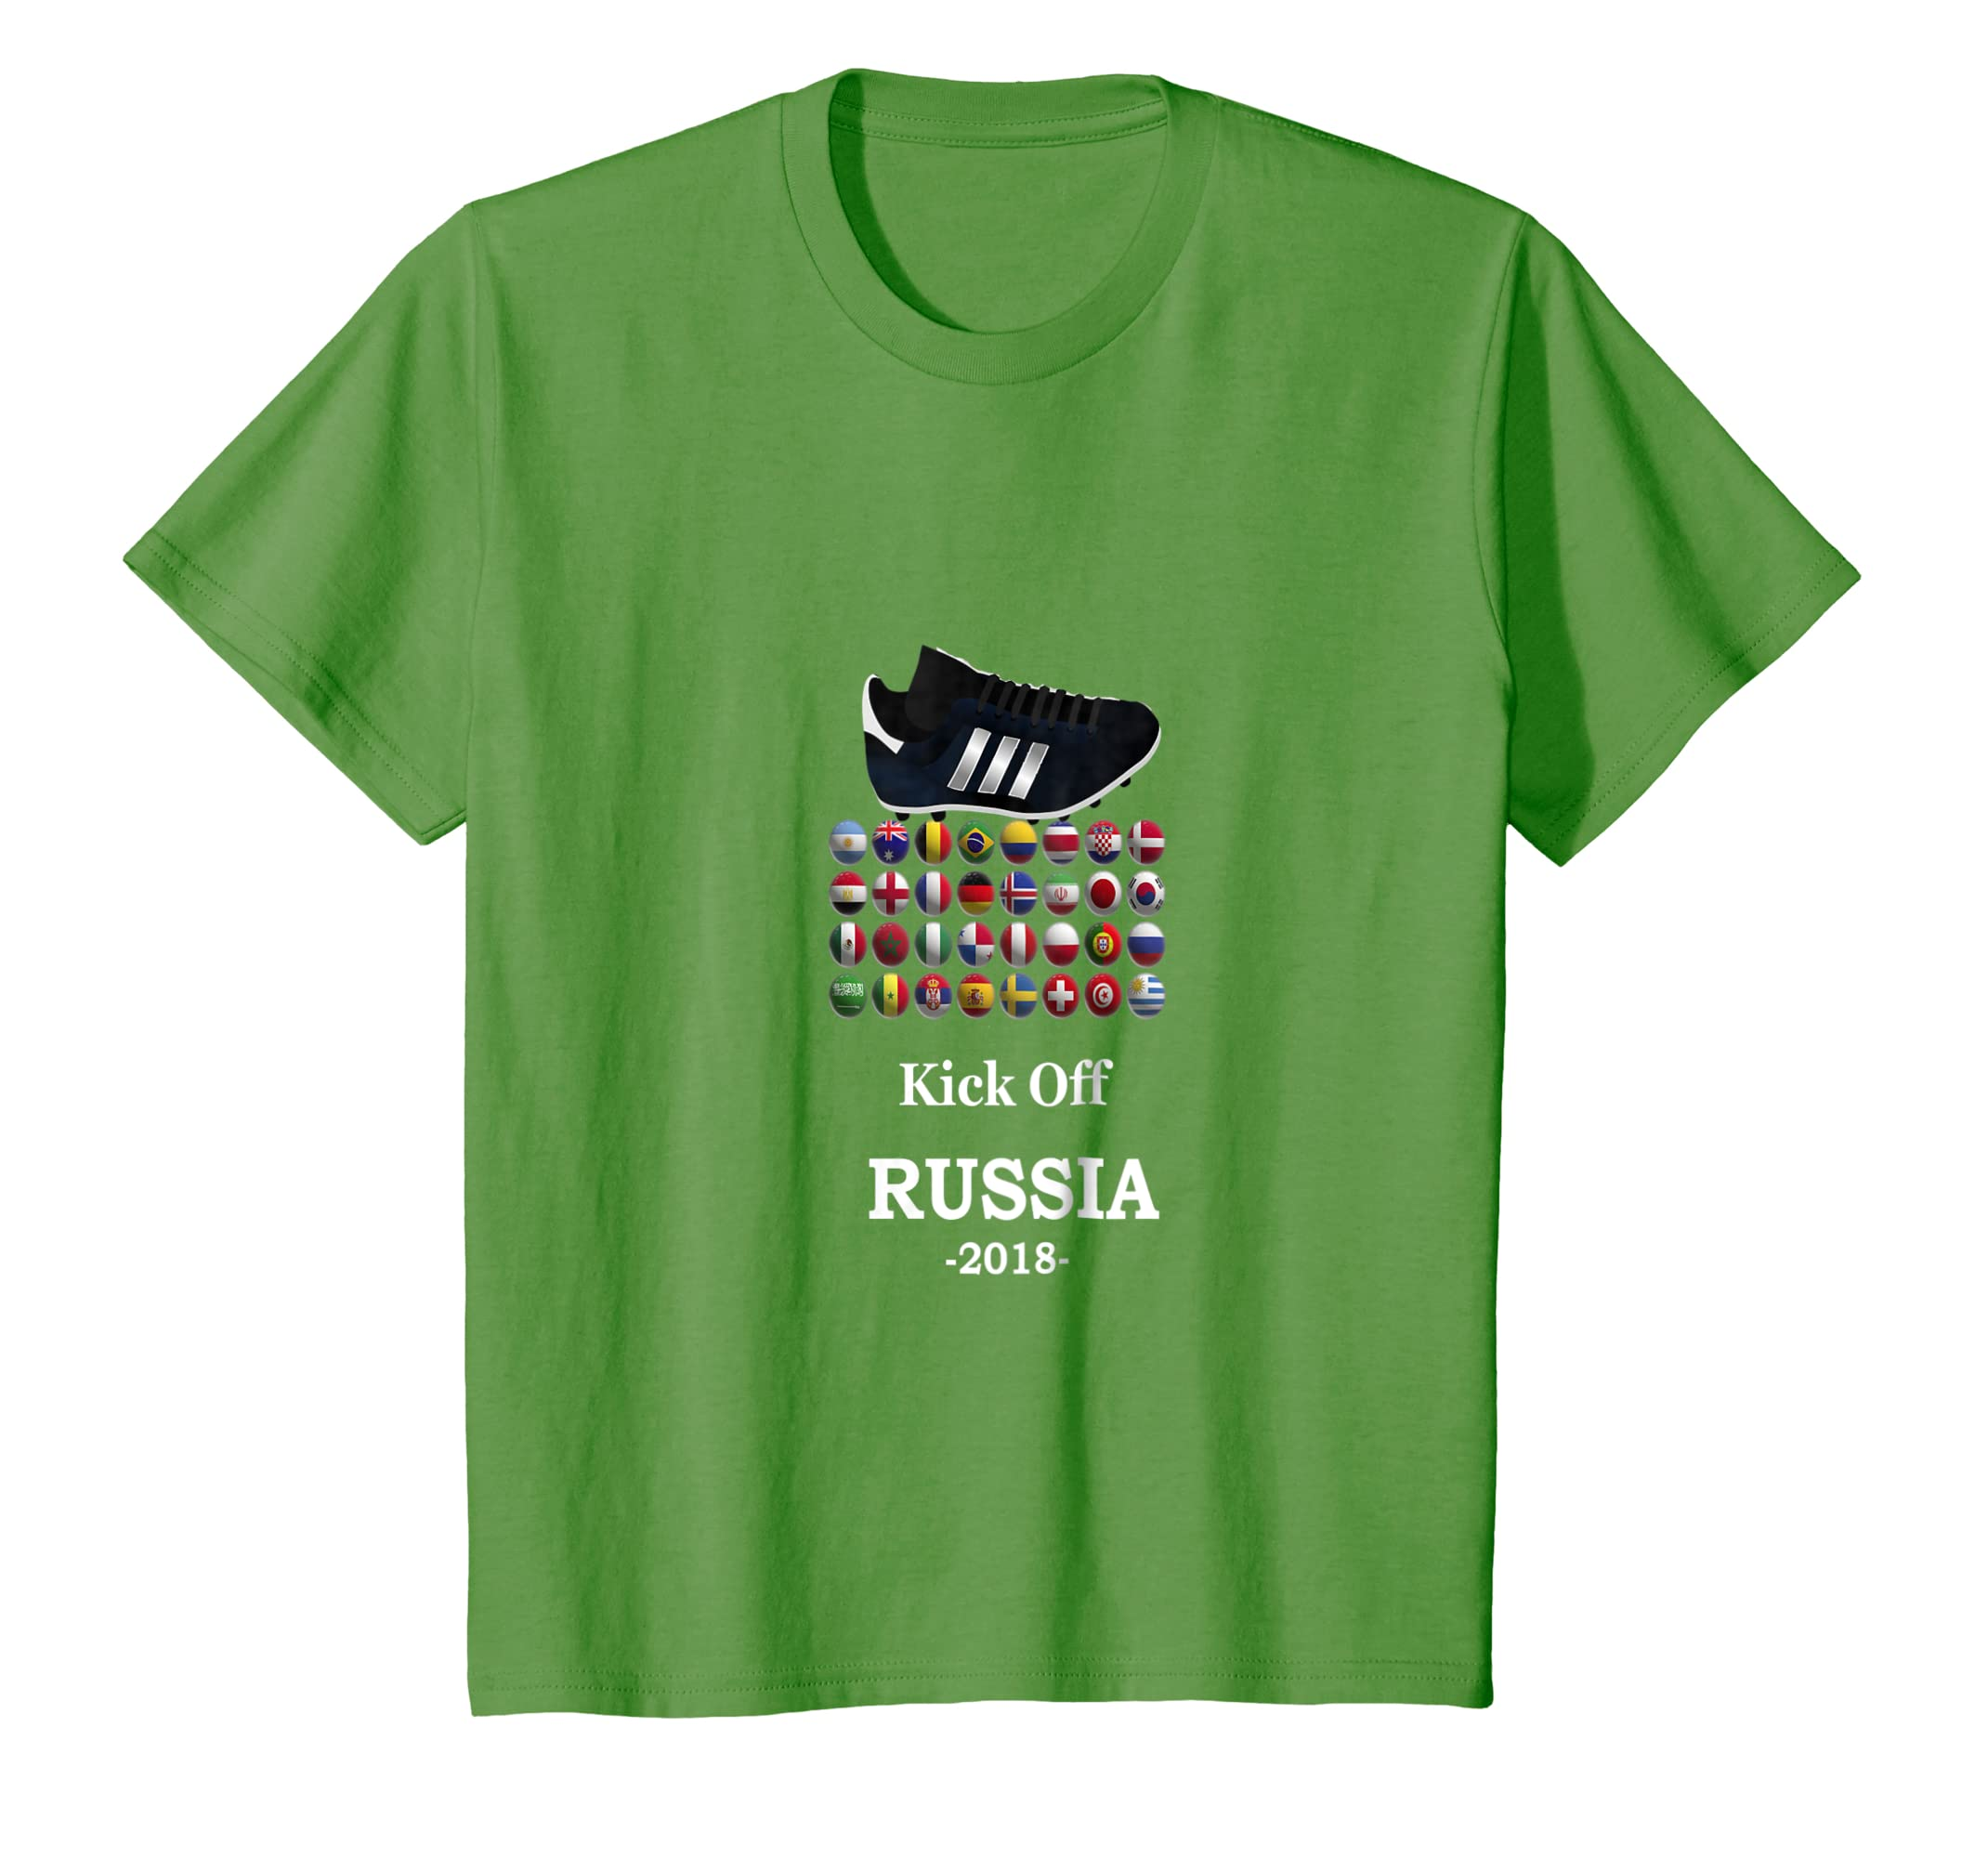 5236a87c4 Amazon.com  Kids World Football Tshirt- Russia 2018 Cup Soccer Shirt   Clothing